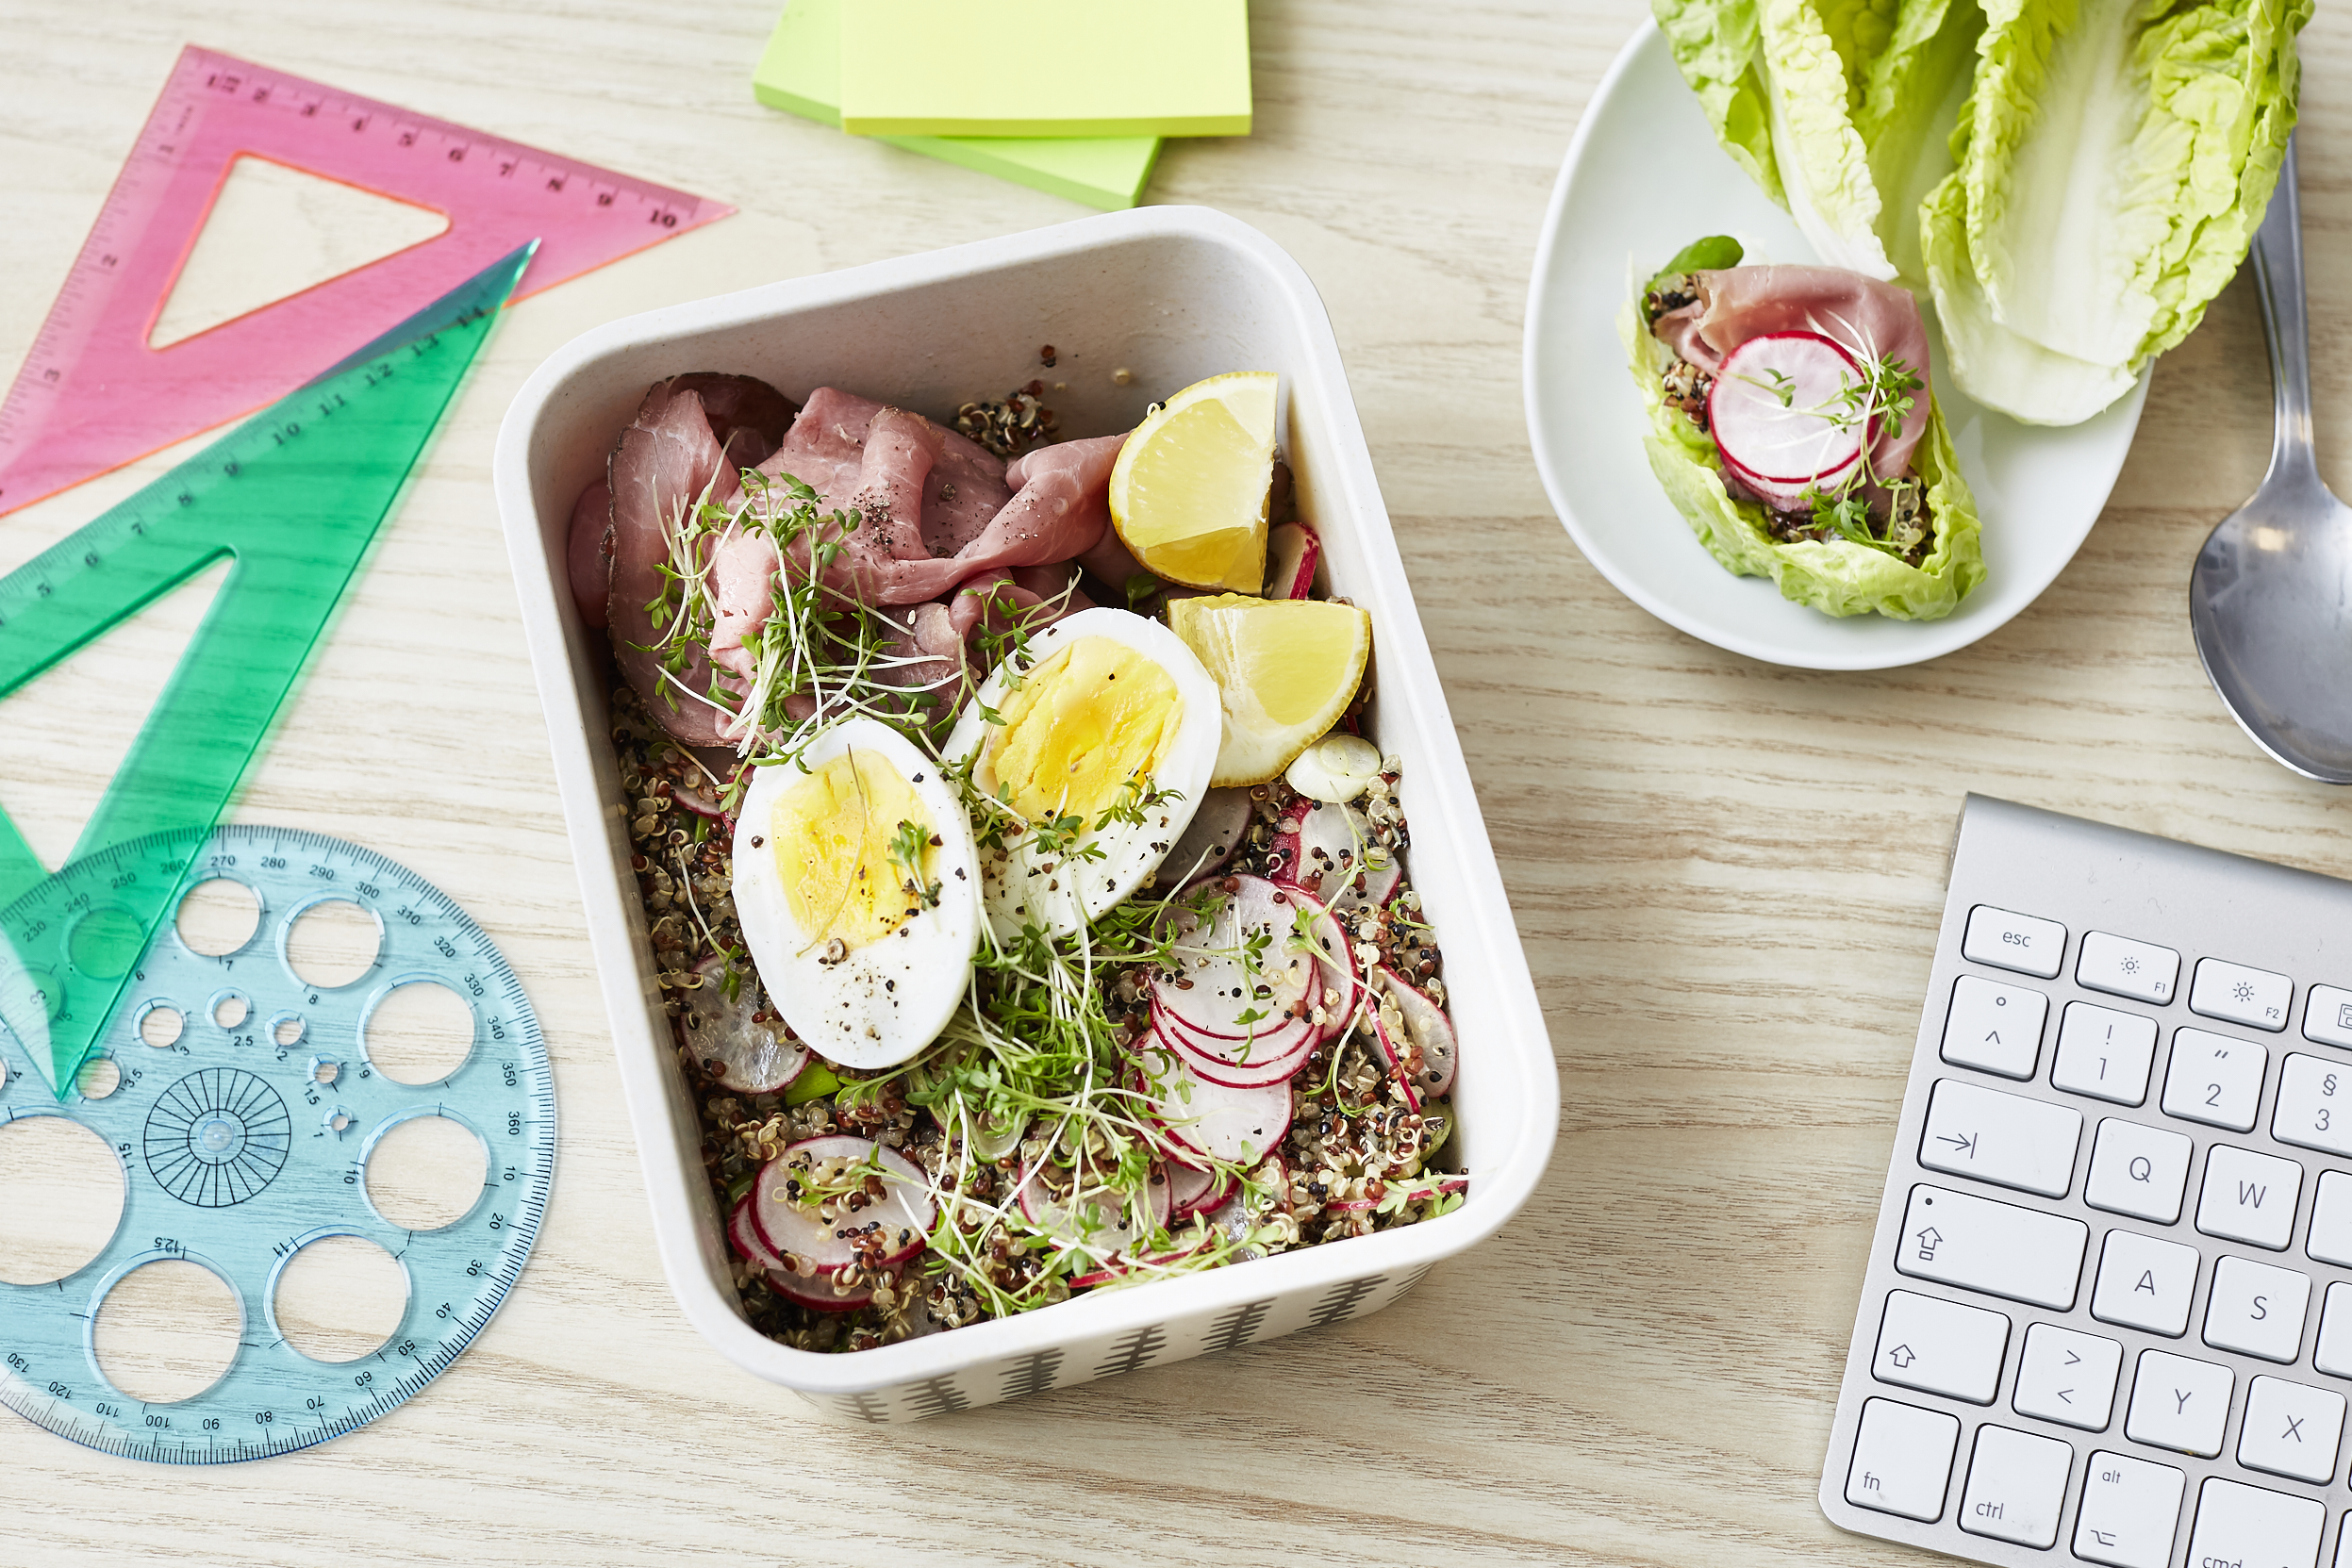 Lunch al desko: Quinoa-Cups mit Roastbeef